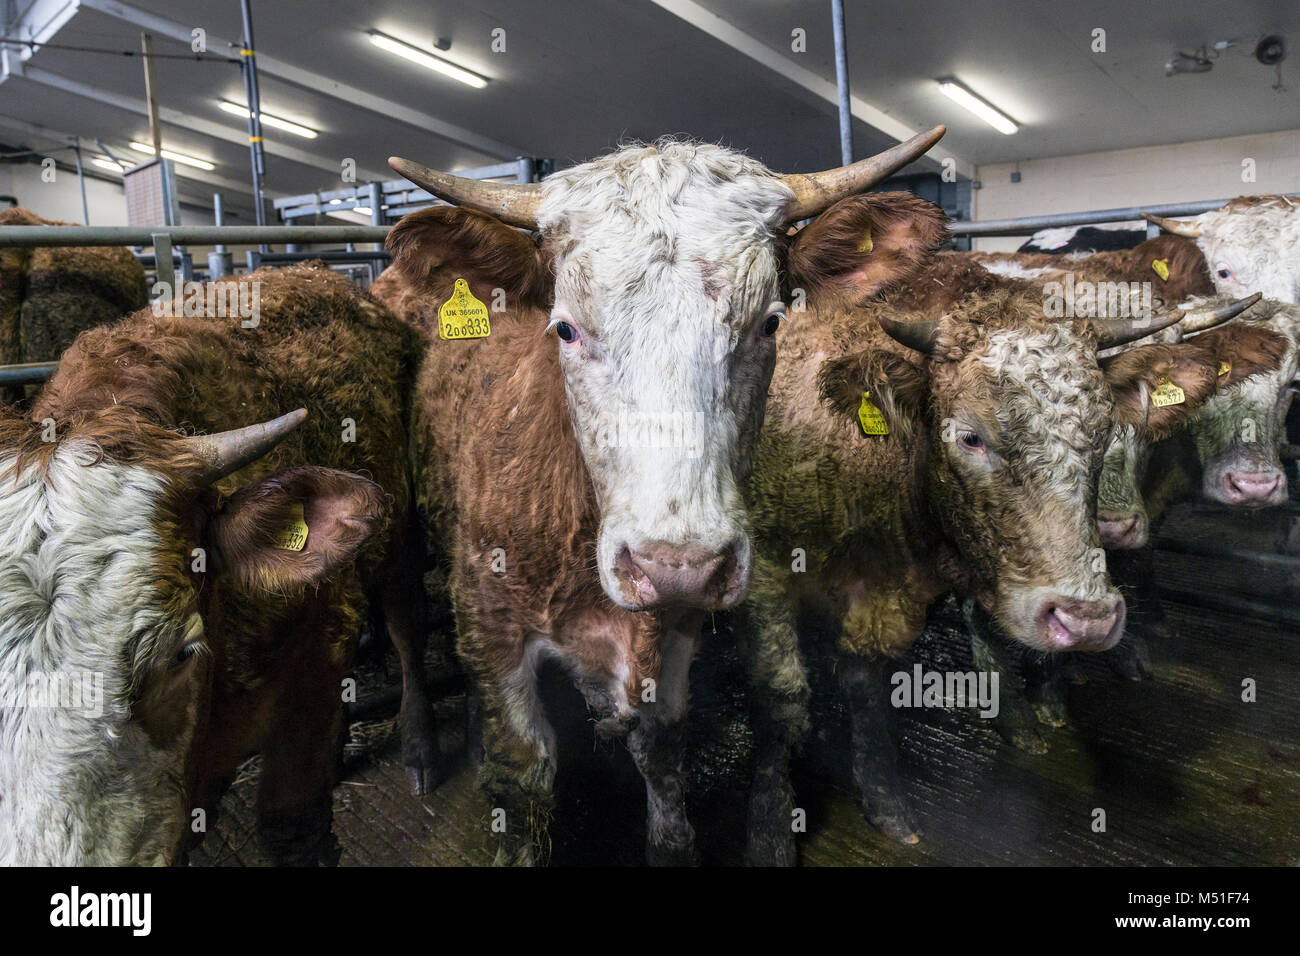 Cattle in large farm building,cattle market. hay, or straw or for housing livestock.Large ruminant animals with - Stock Image